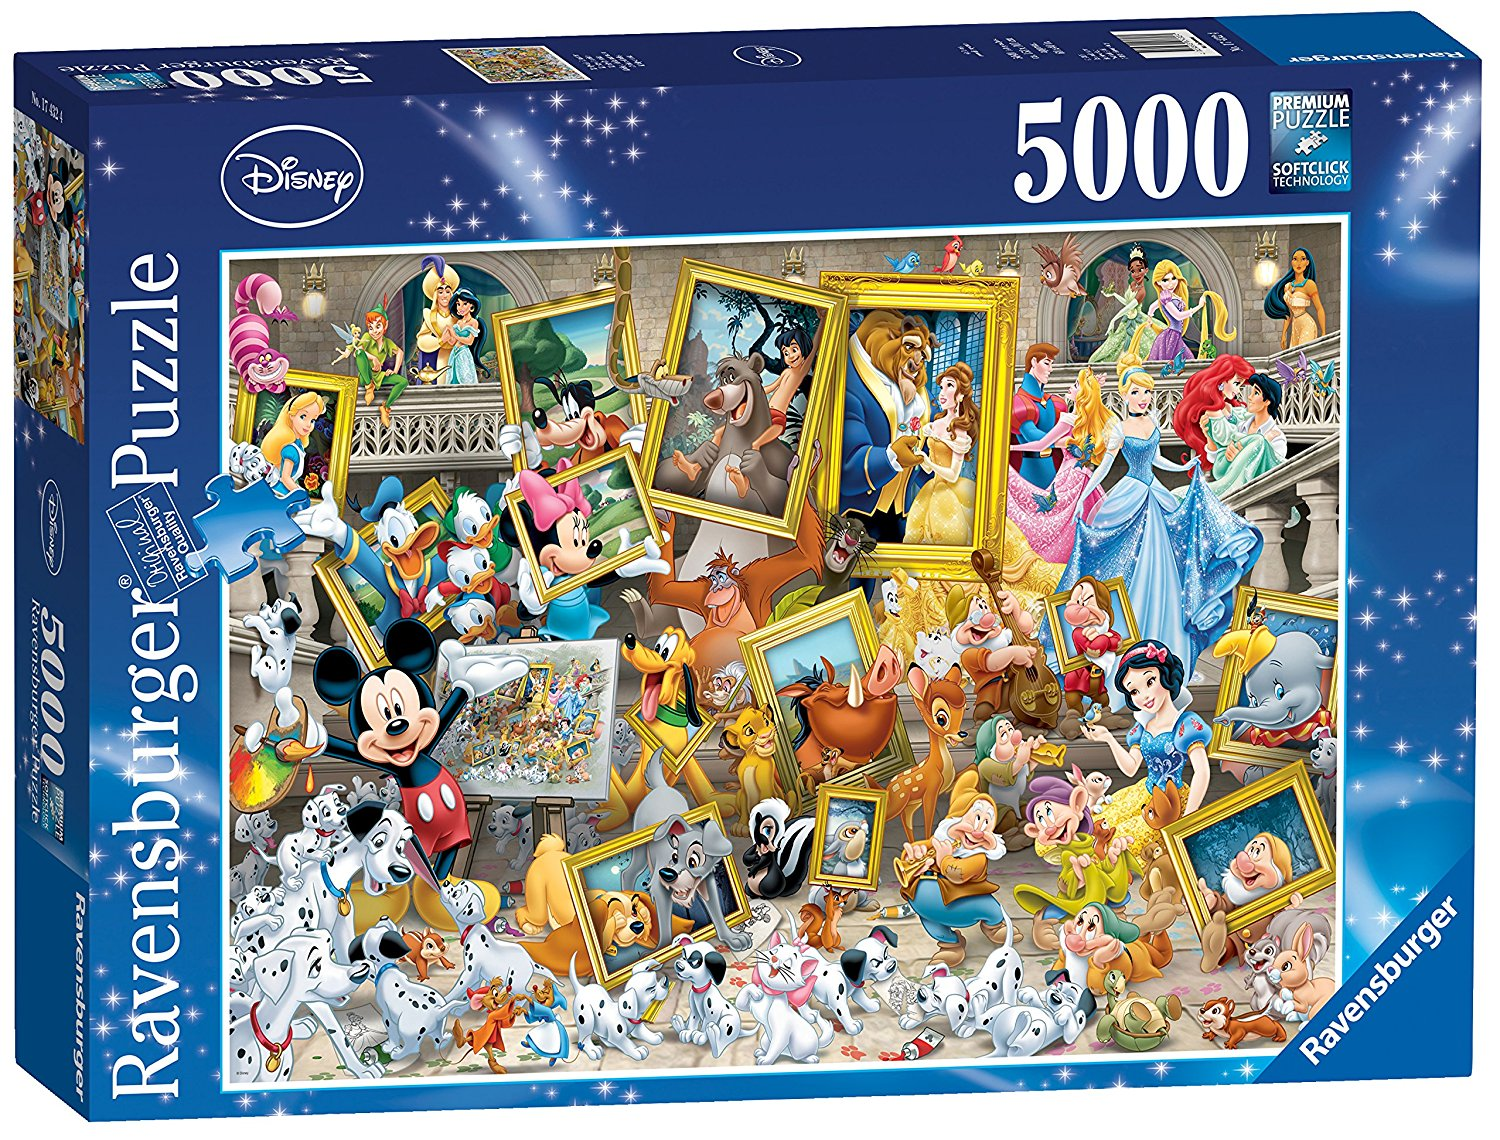 mickey als k nstler 5000 teile ravensburger puzzle. Black Bedroom Furniture Sets. Home Design Ideas